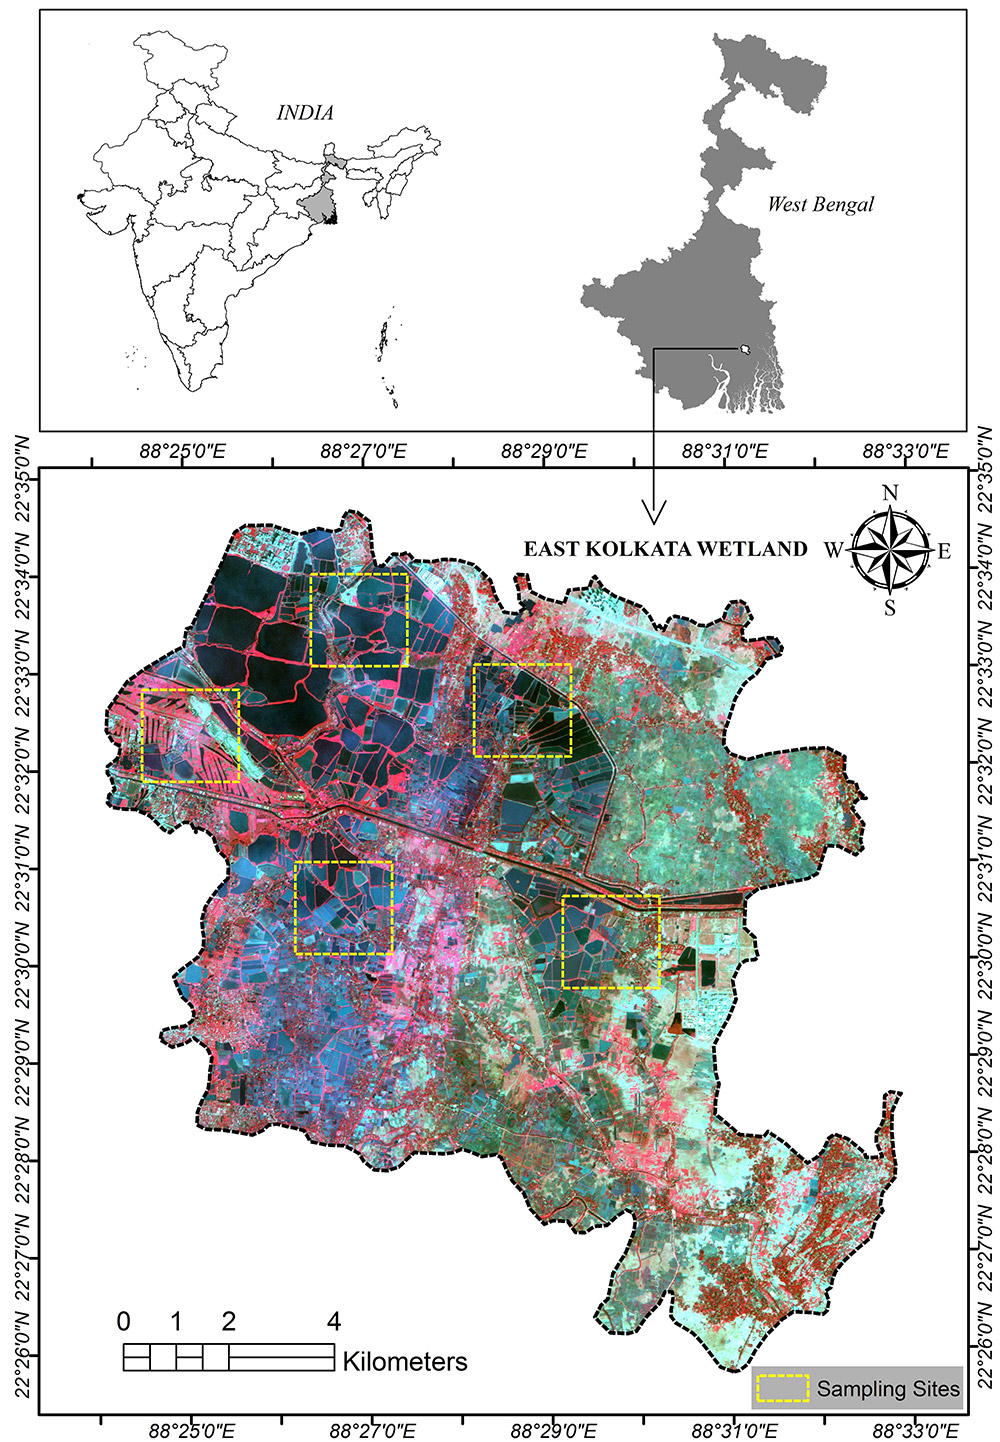 A map of the East Kolkata Wetlands presented in the study.